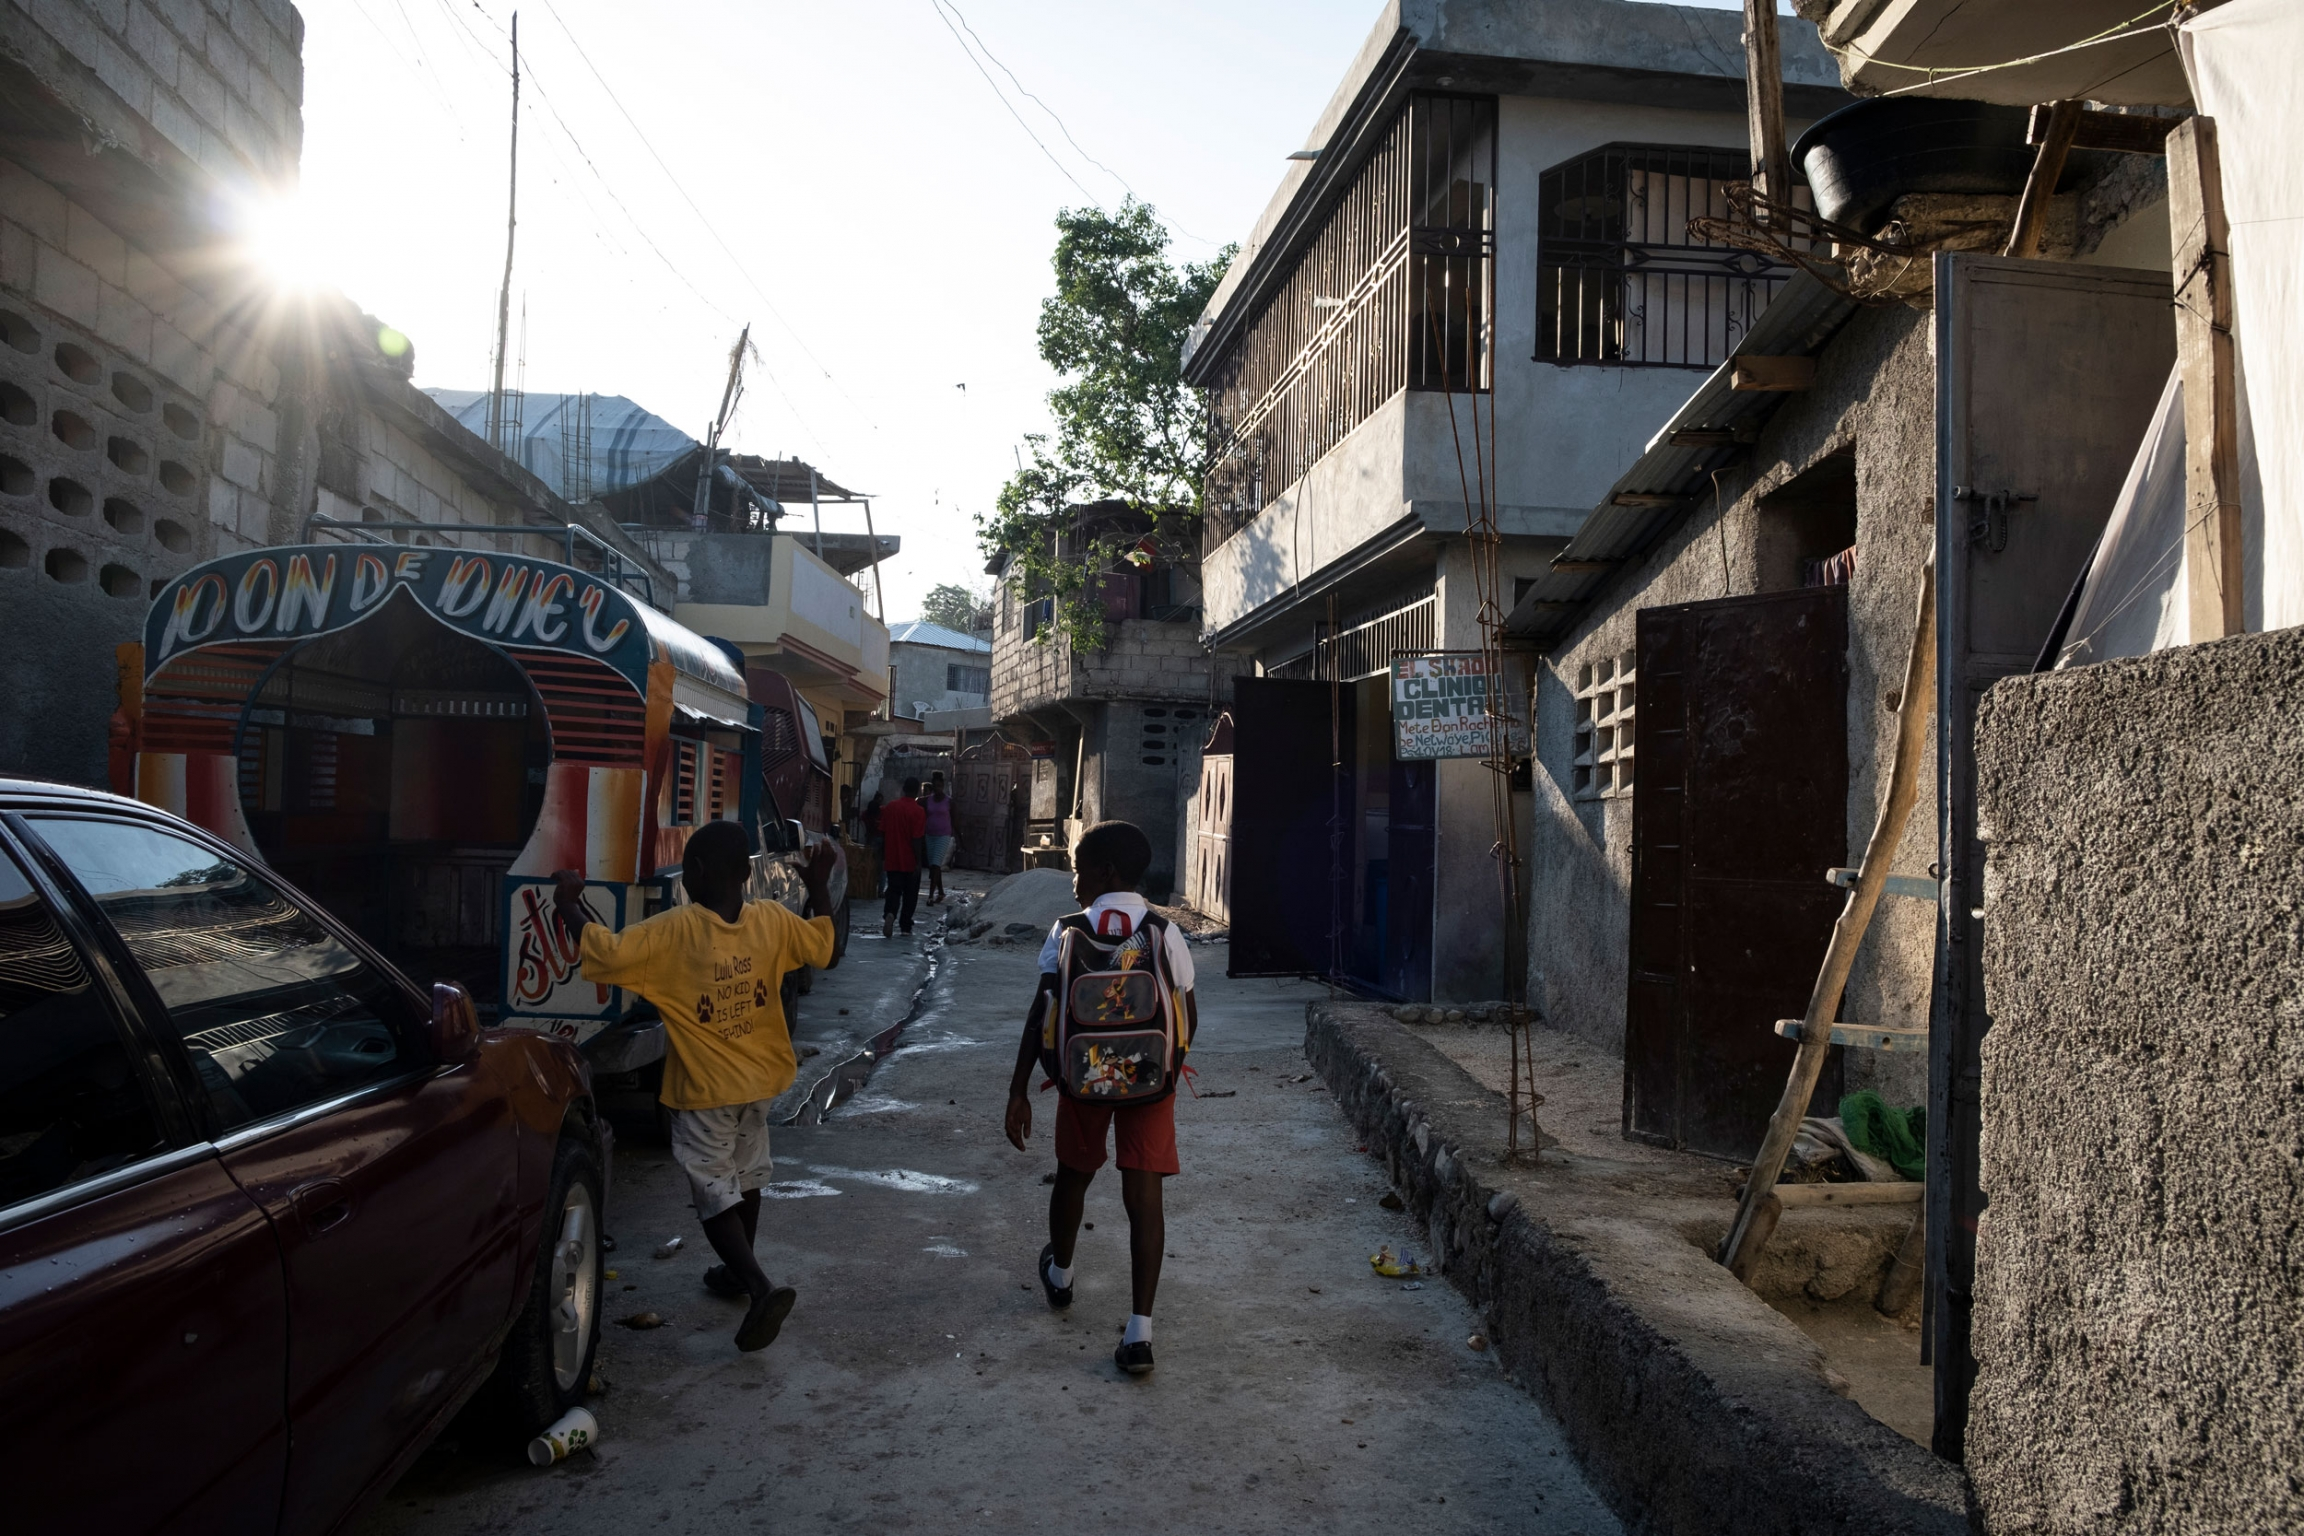 Two children, one with a backpack, are shown walking through a neighborhood in Laboule, outside of Port-au-Prince, Haiti.